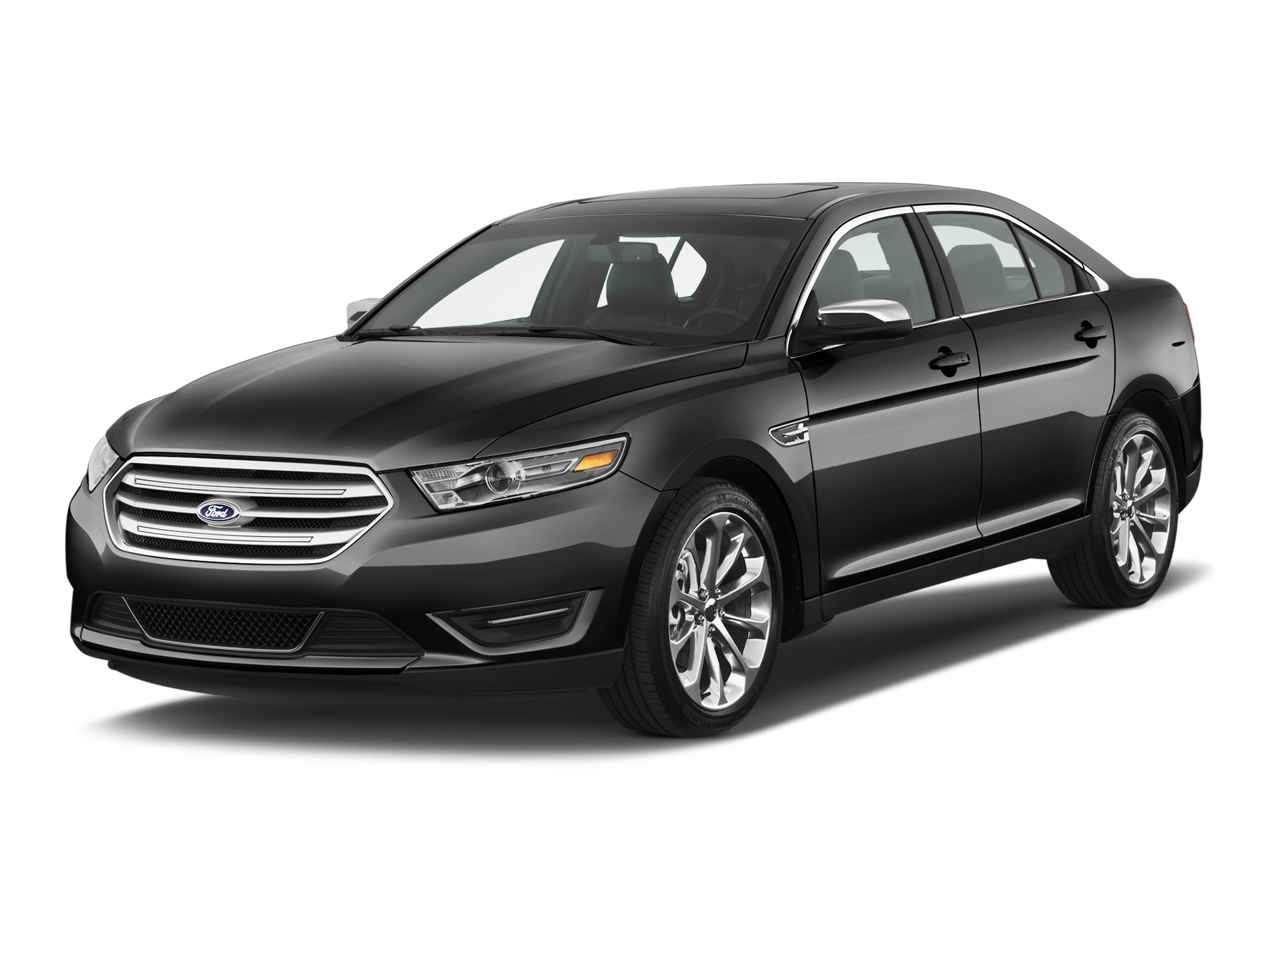 used one owner 2015 ford taurus limited near rapid city sd gateway autoplex. Black Bedroom Furniture Sets. Home Design Ideas